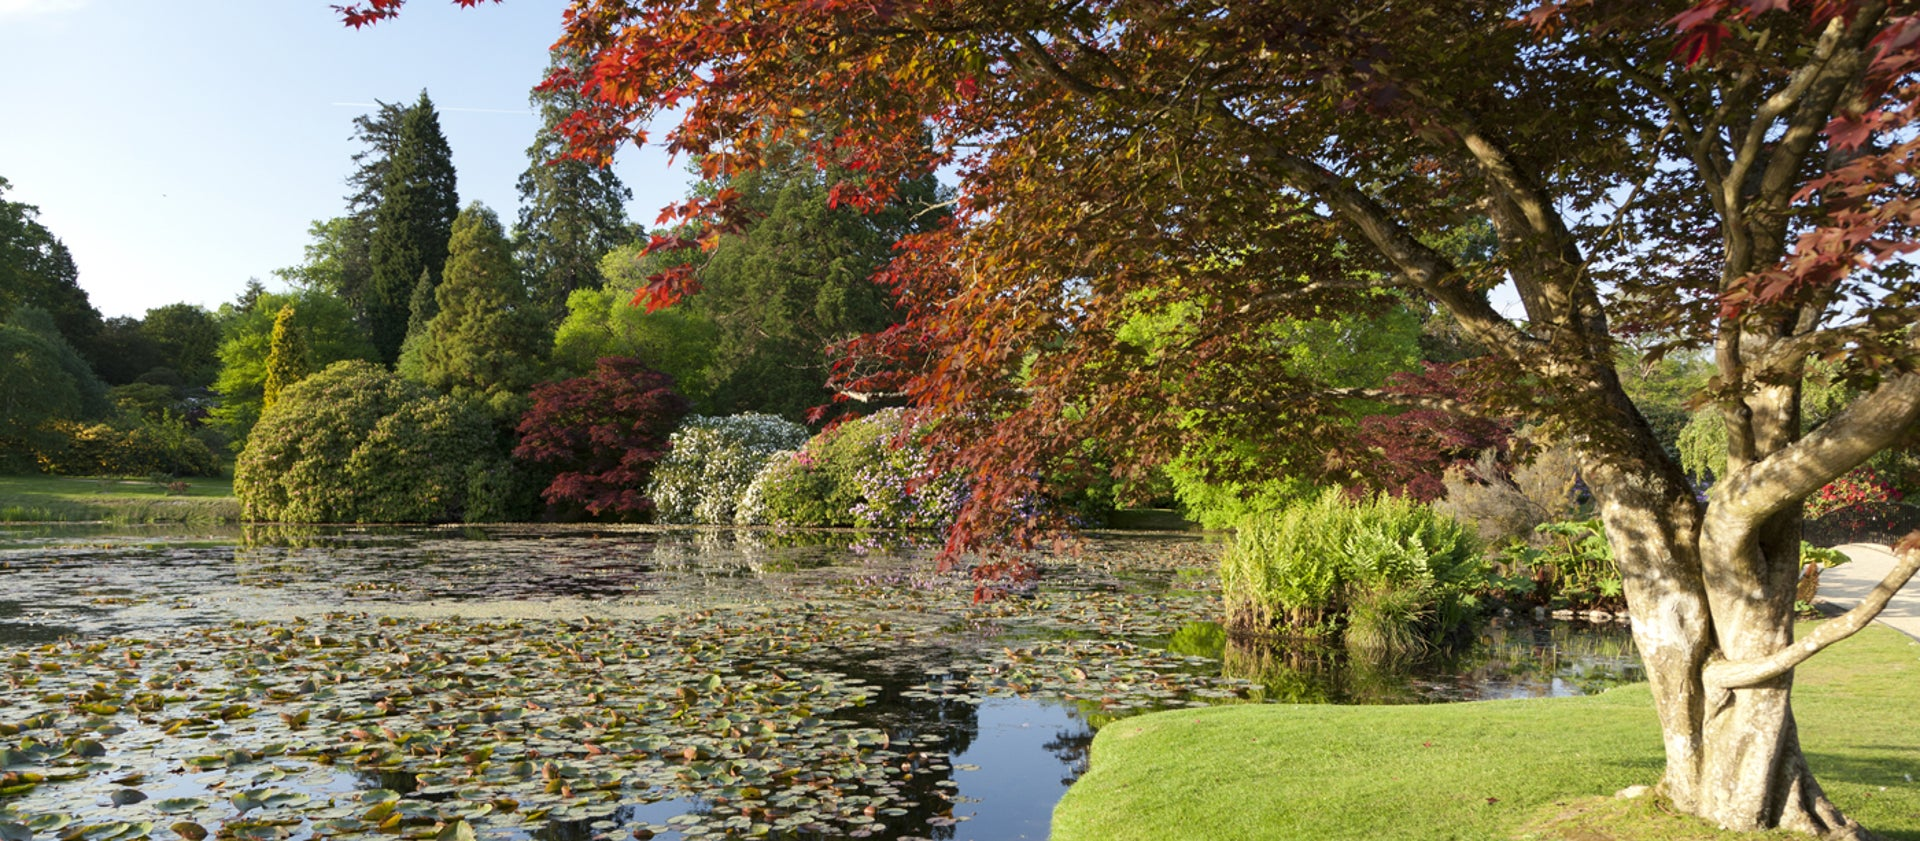 Sheffield Park and Garden | National Trust